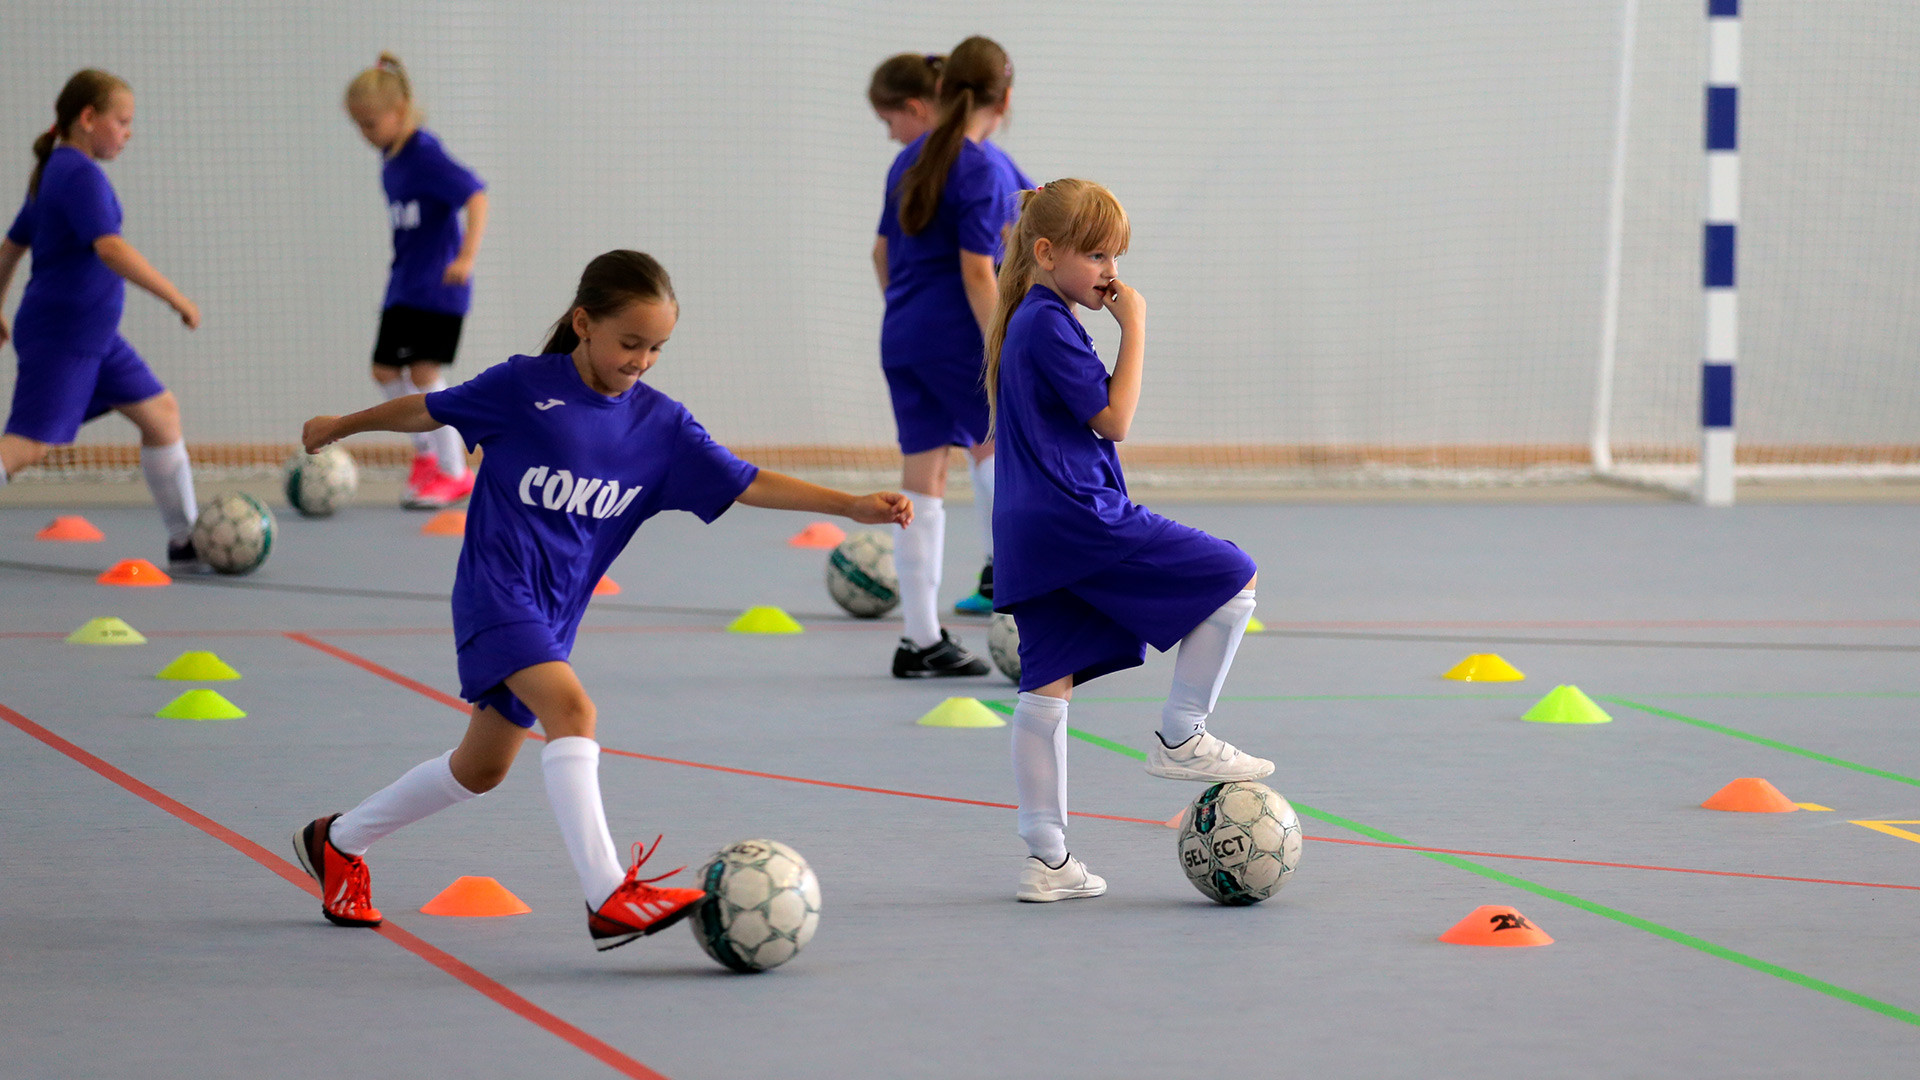 Girls at a football training session. Vitaliy Belousov/Sputnik